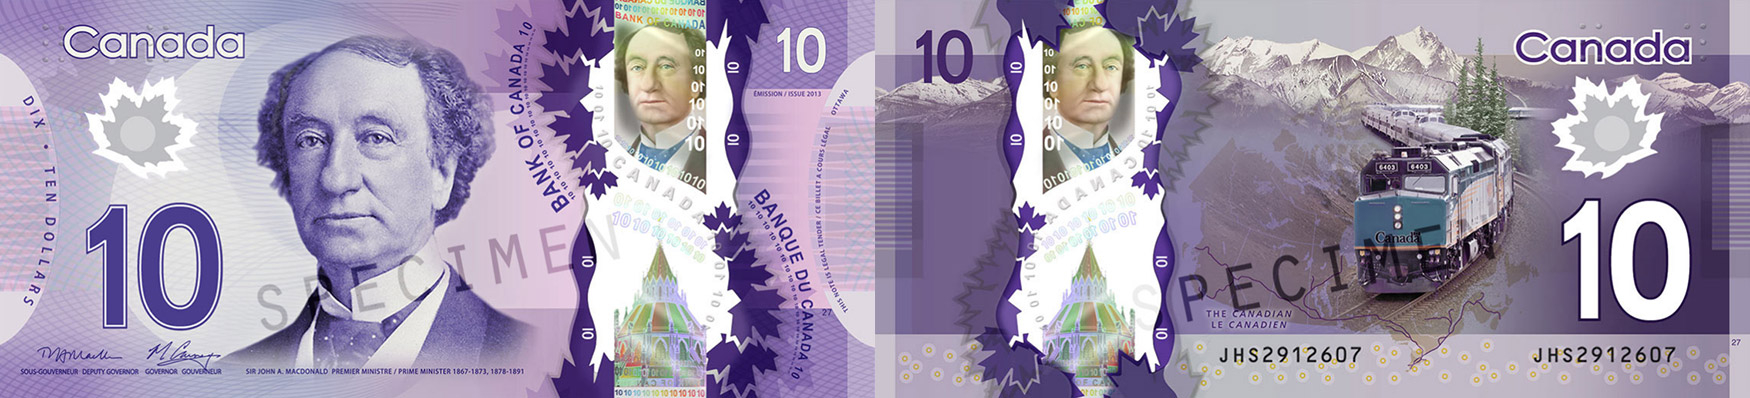 10 dollars 2011 to 2018 - Canada Banknote